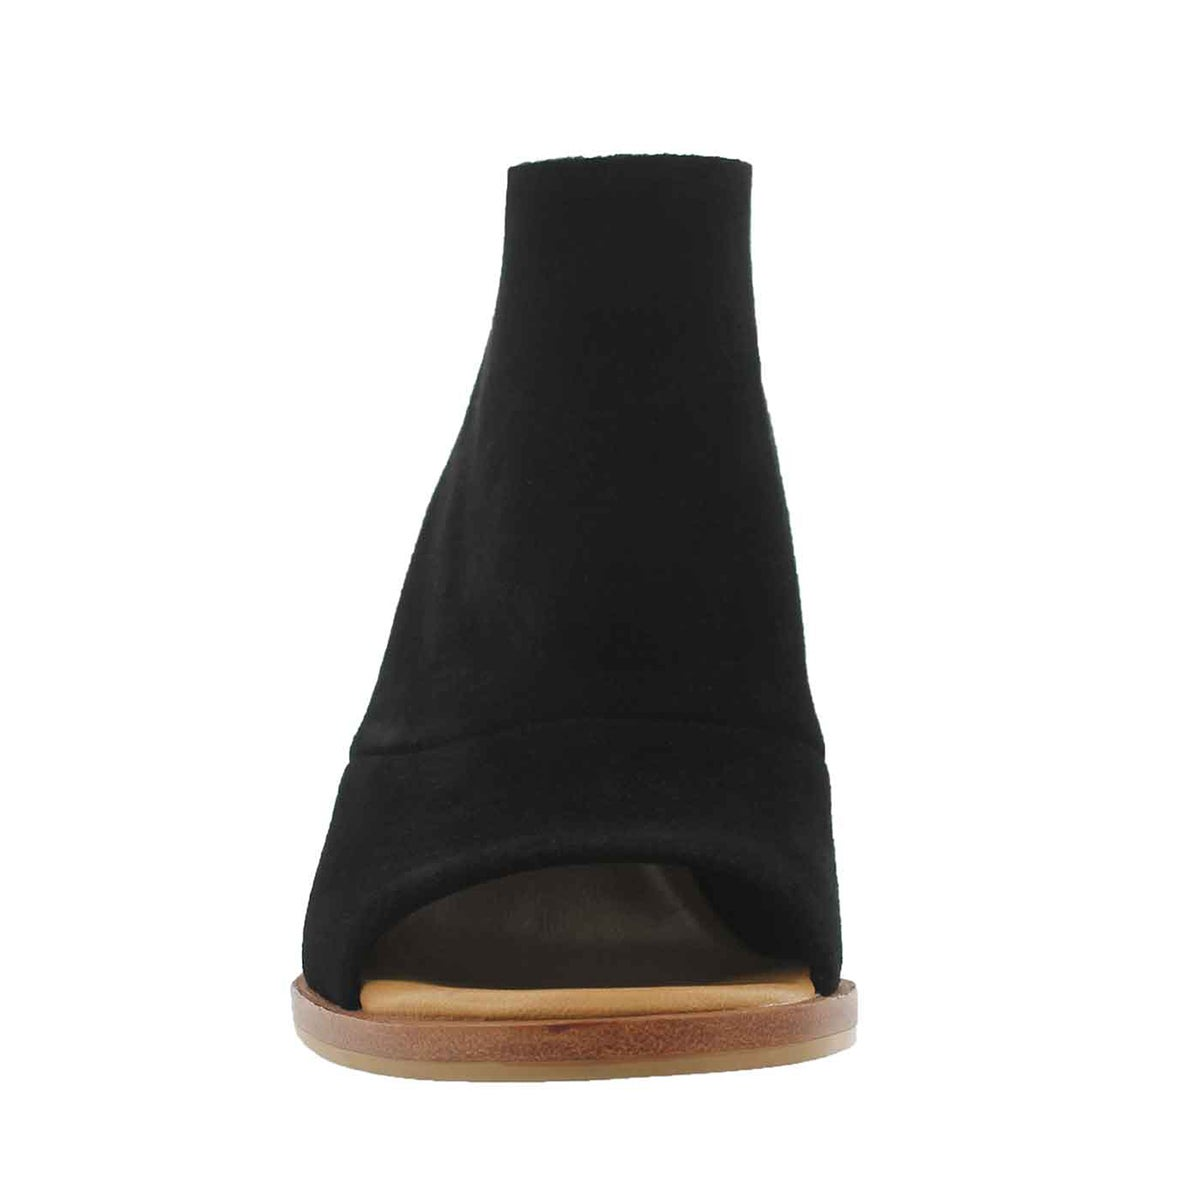 Lds Ginger black peep toe dress heel